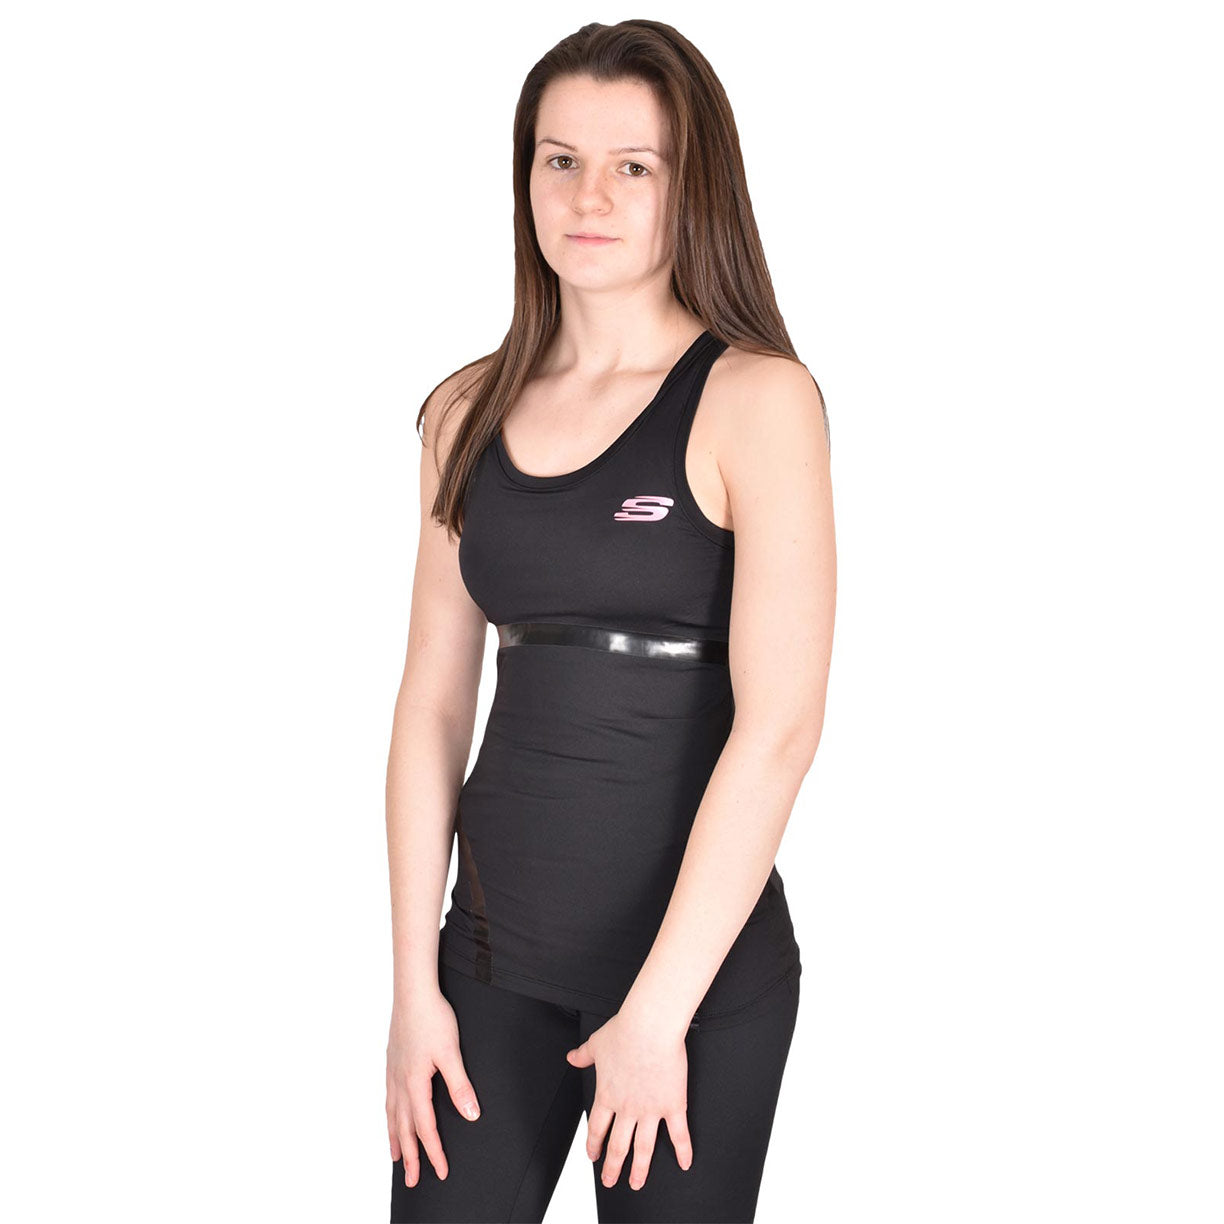 Skechers Gym Vest Opal Black